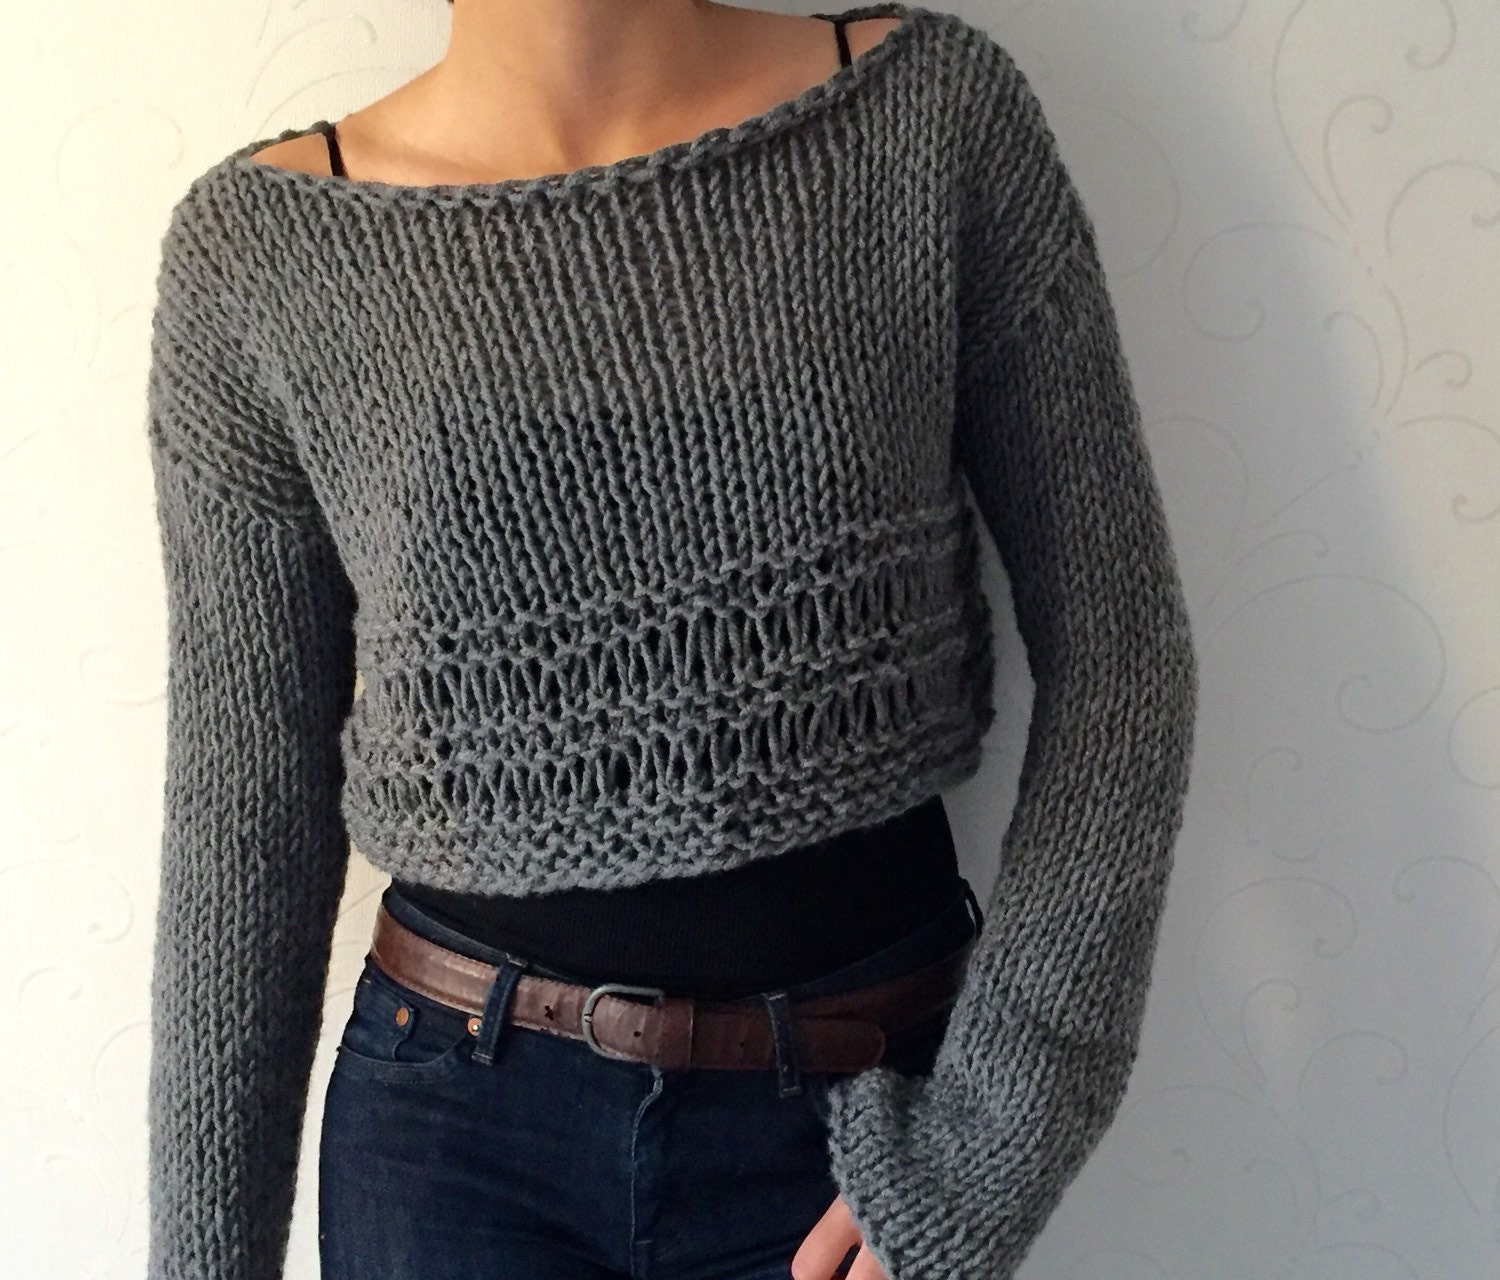 Knit sweater Knit crop top Cropped wool sweater Winter trends